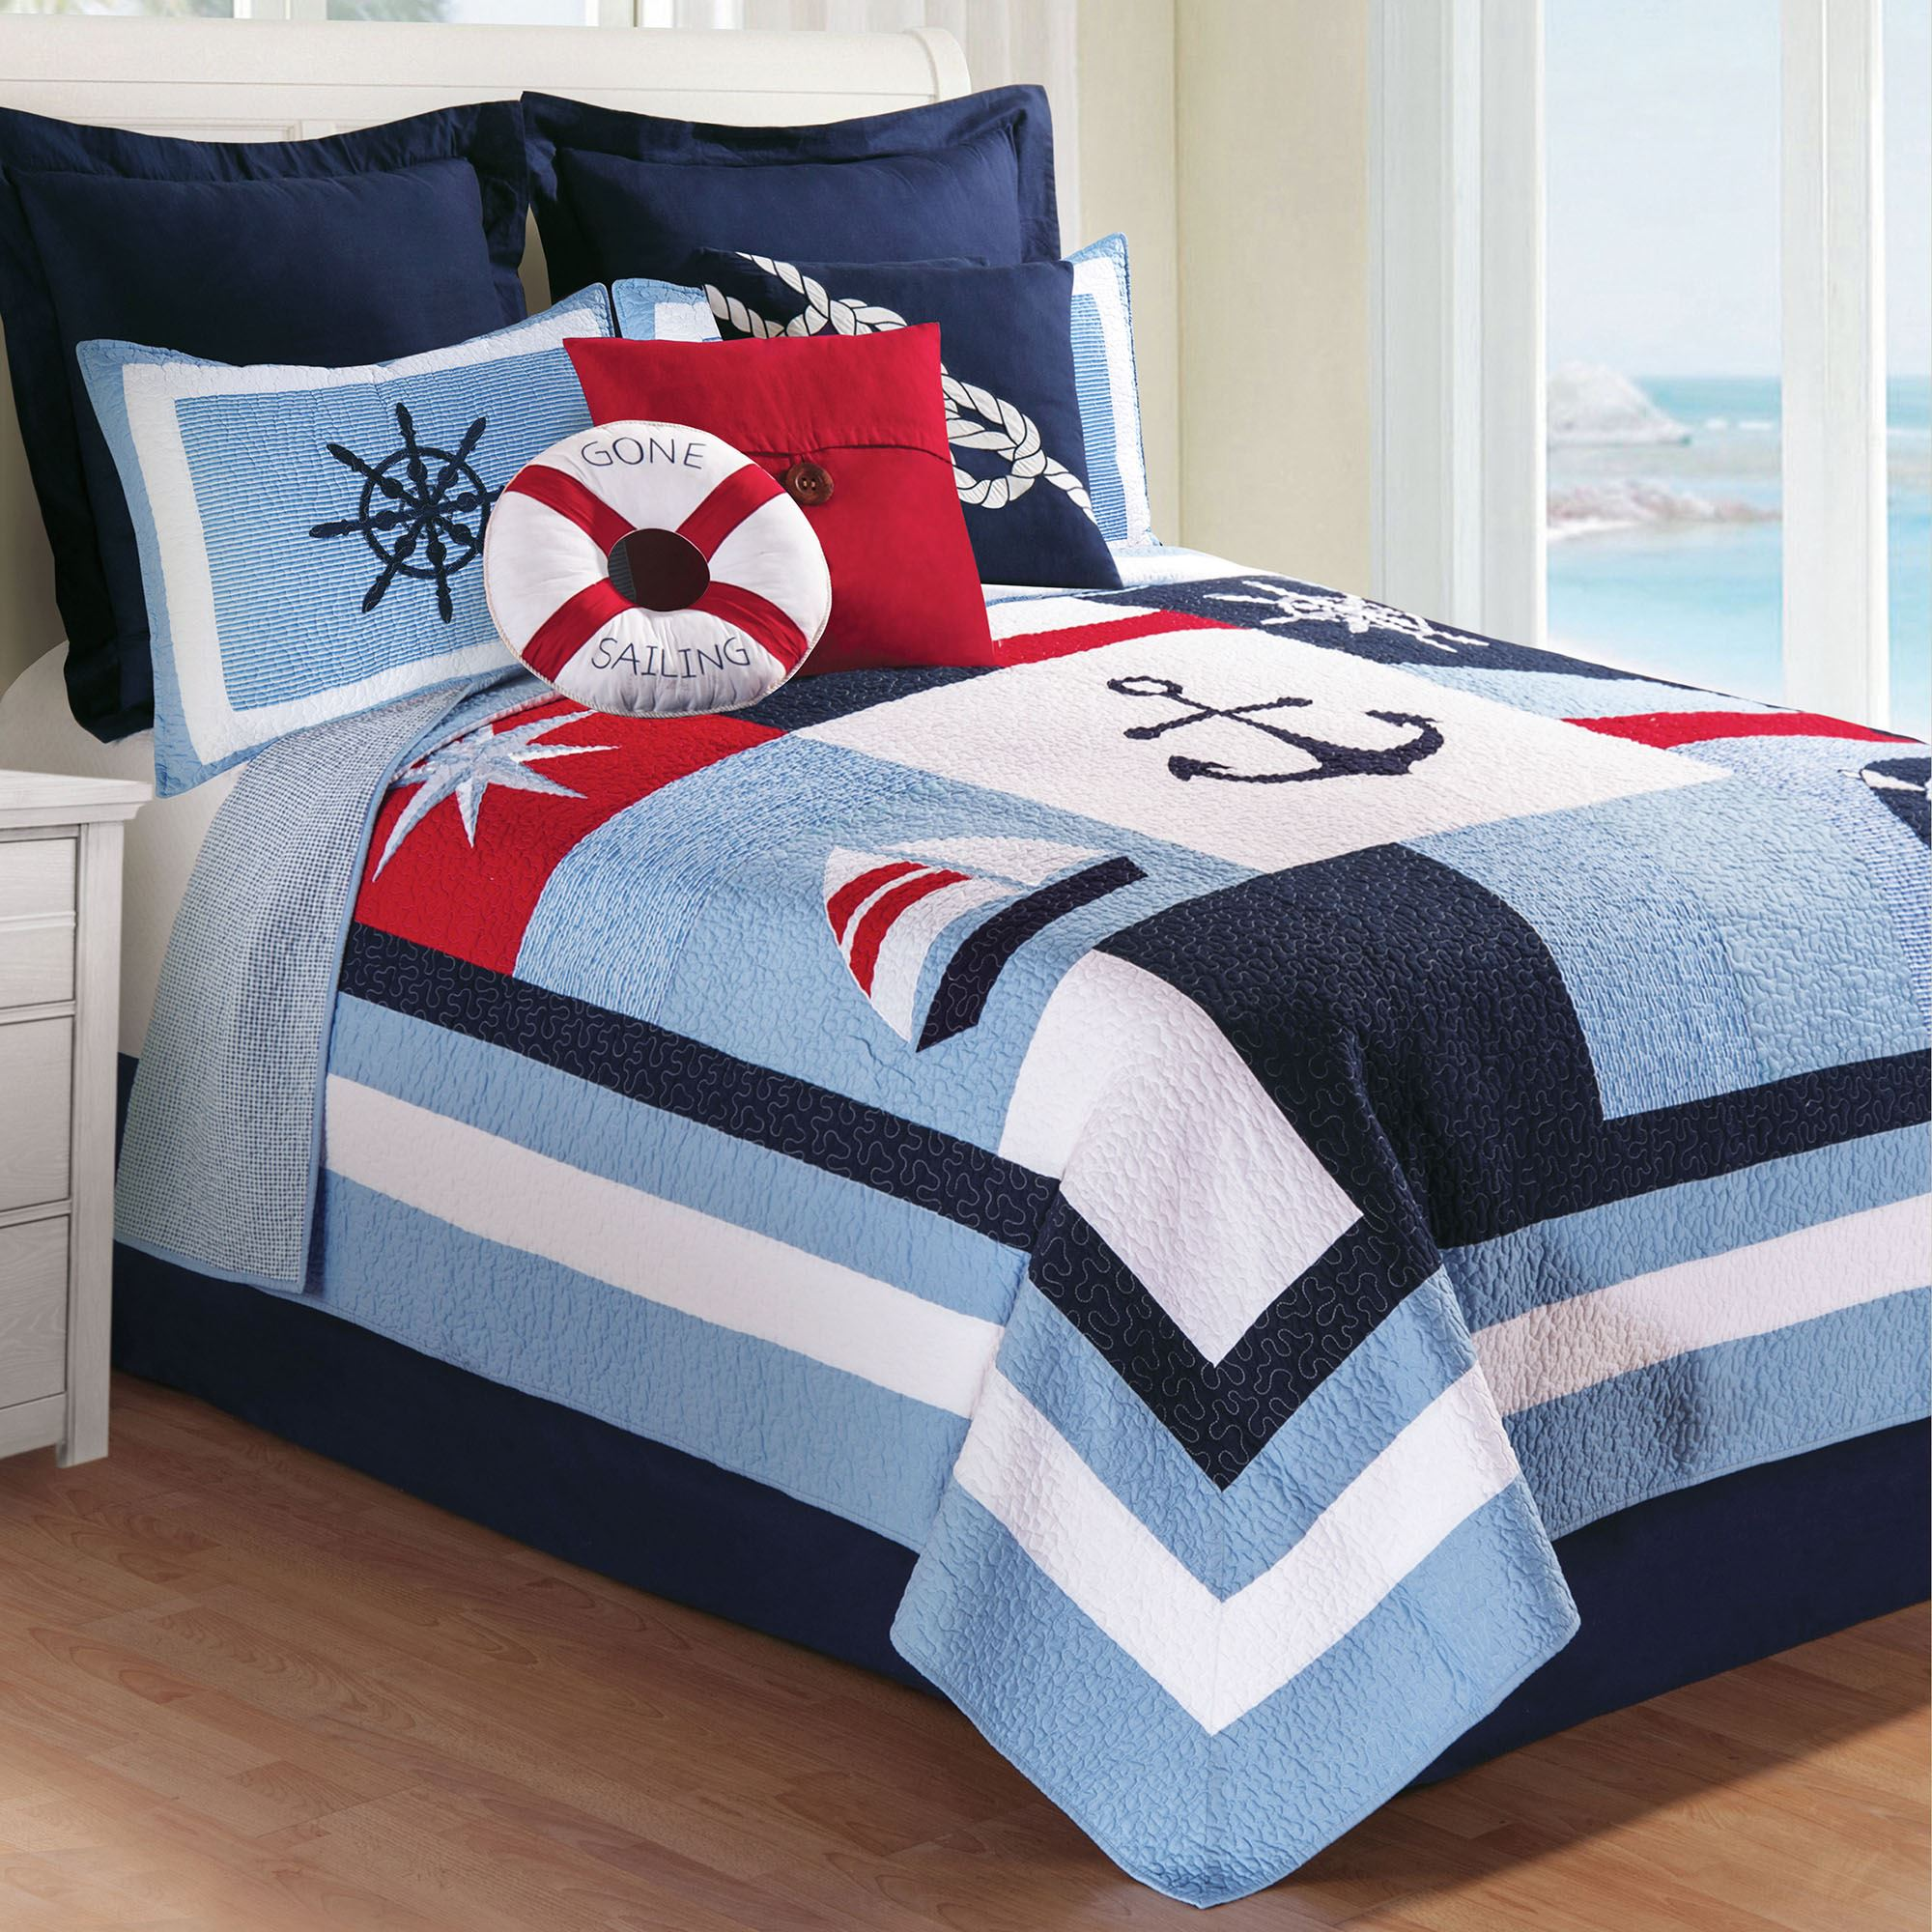 Noah Blue Nautical Patchwork Quilt Bedding